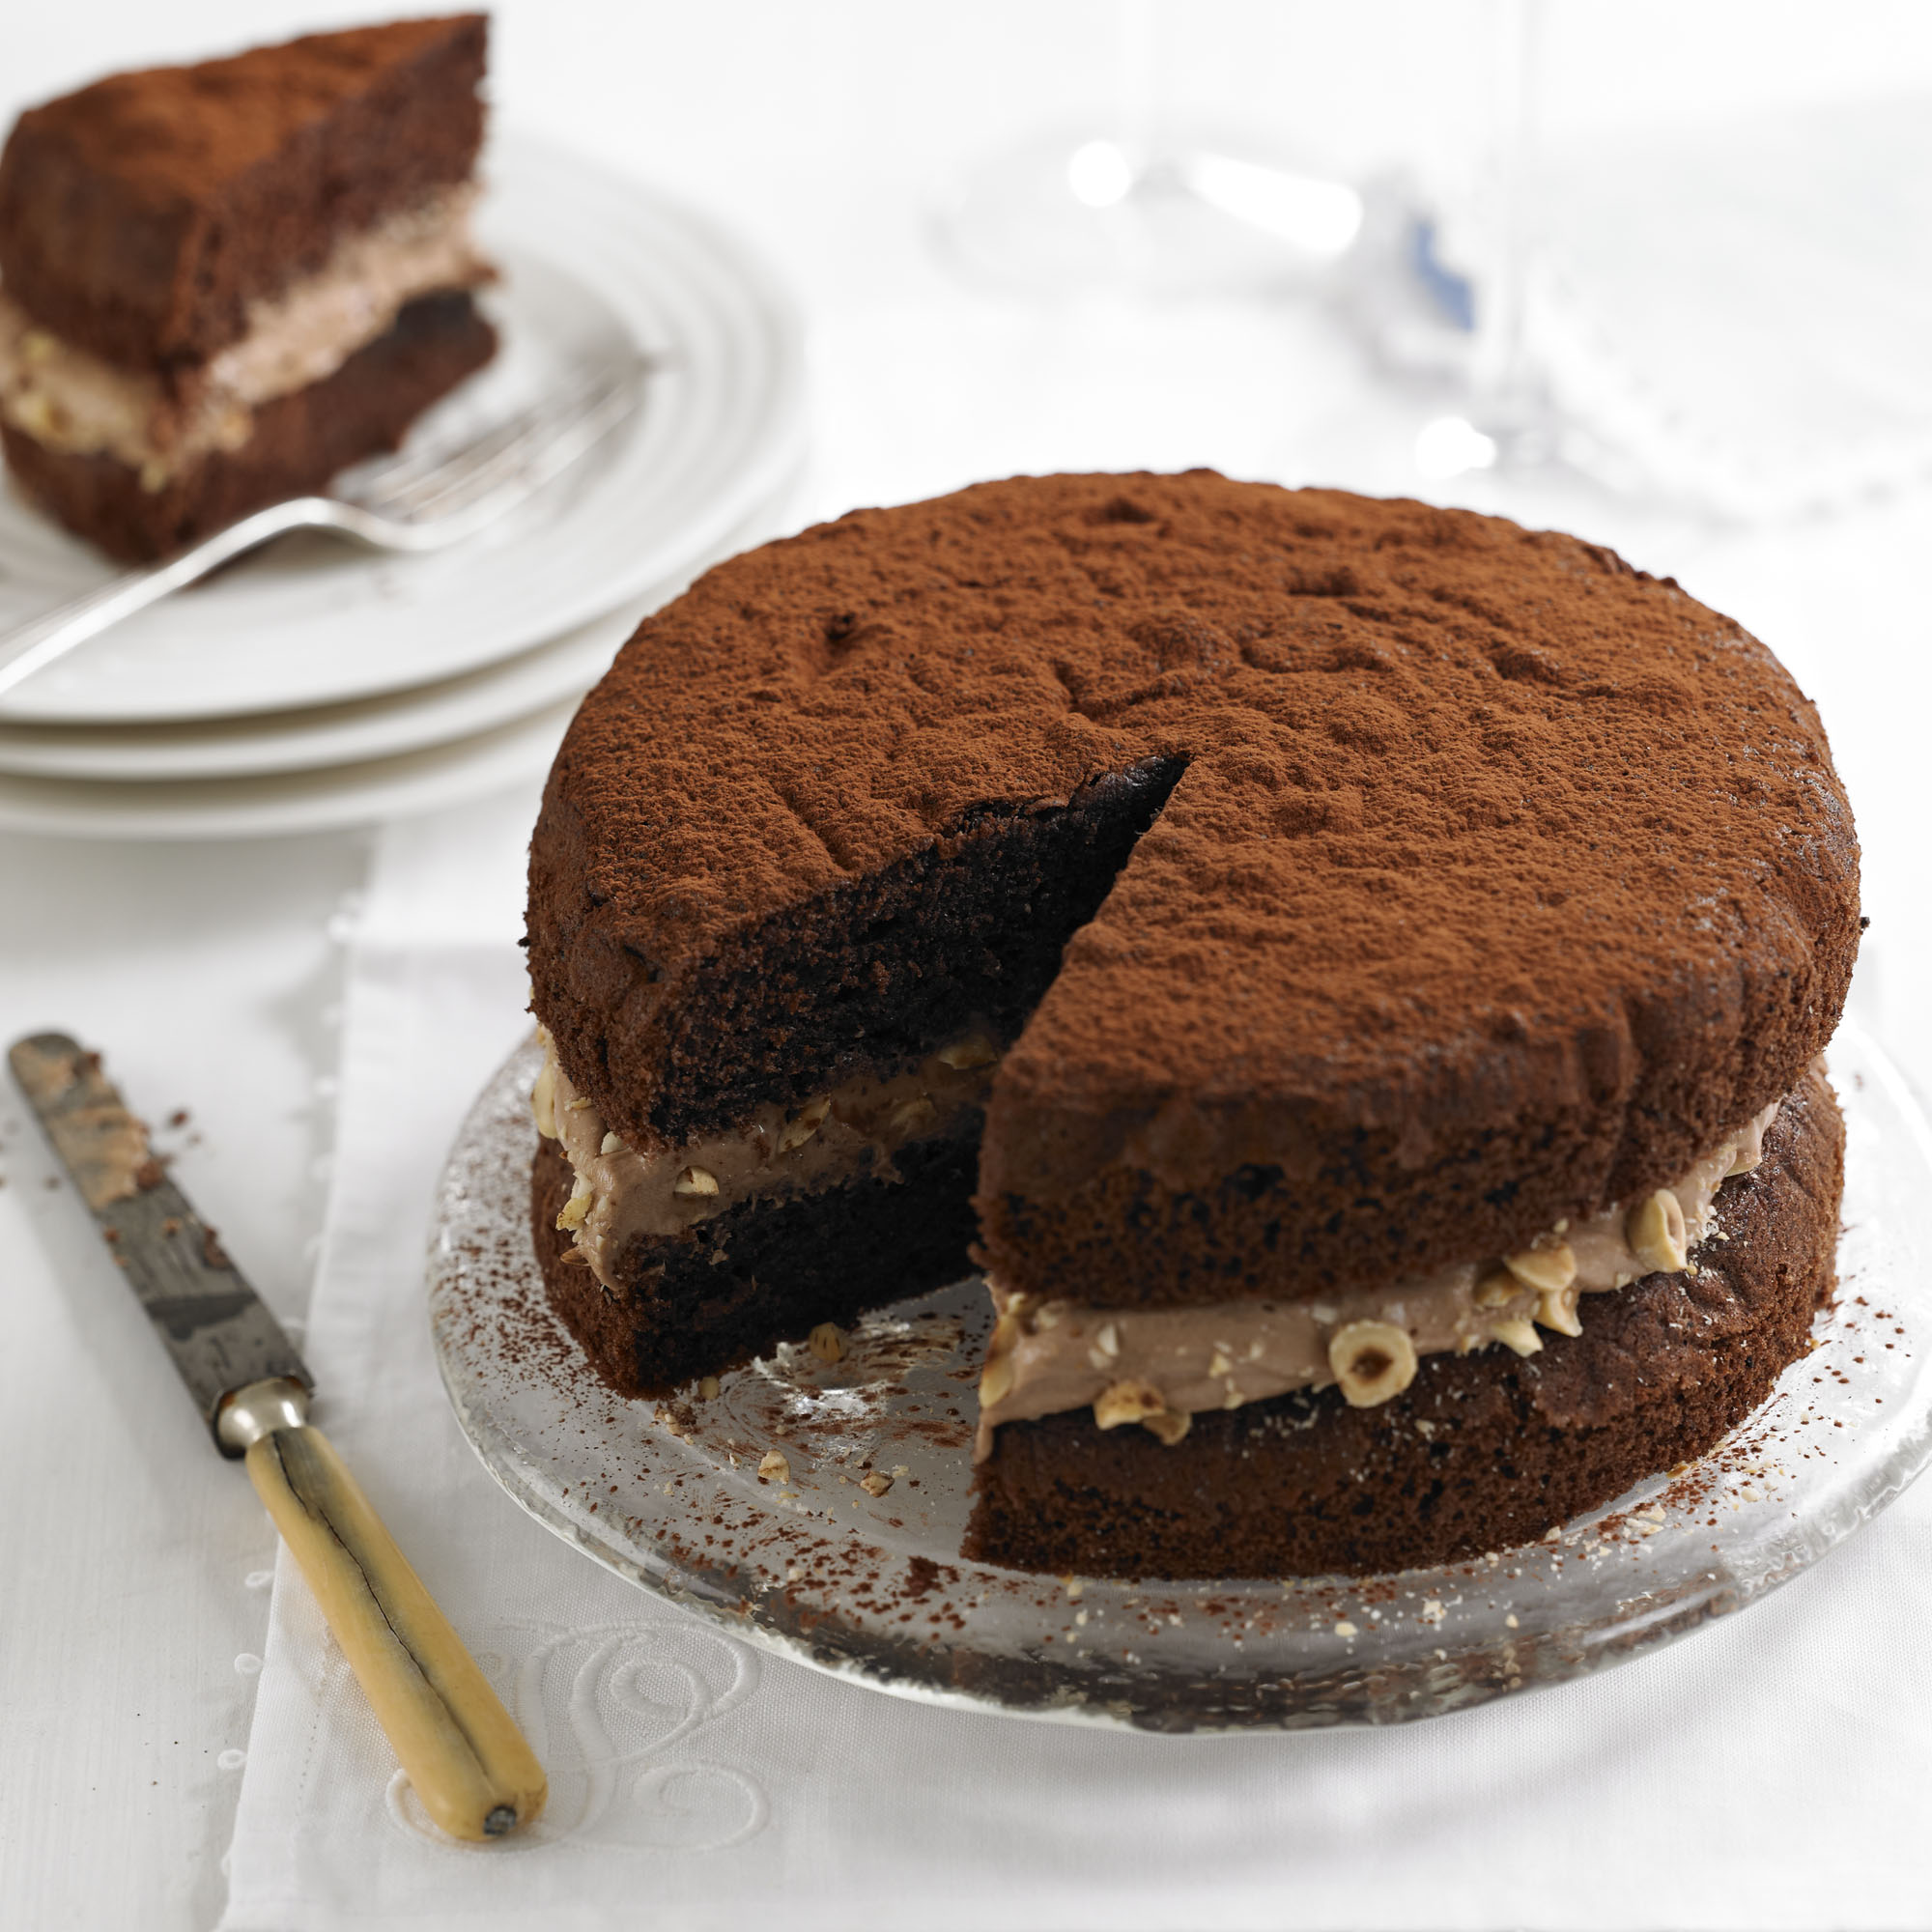 Give the classic Victoria sandwich a twist with this tasty chocolate hazelnut recipe